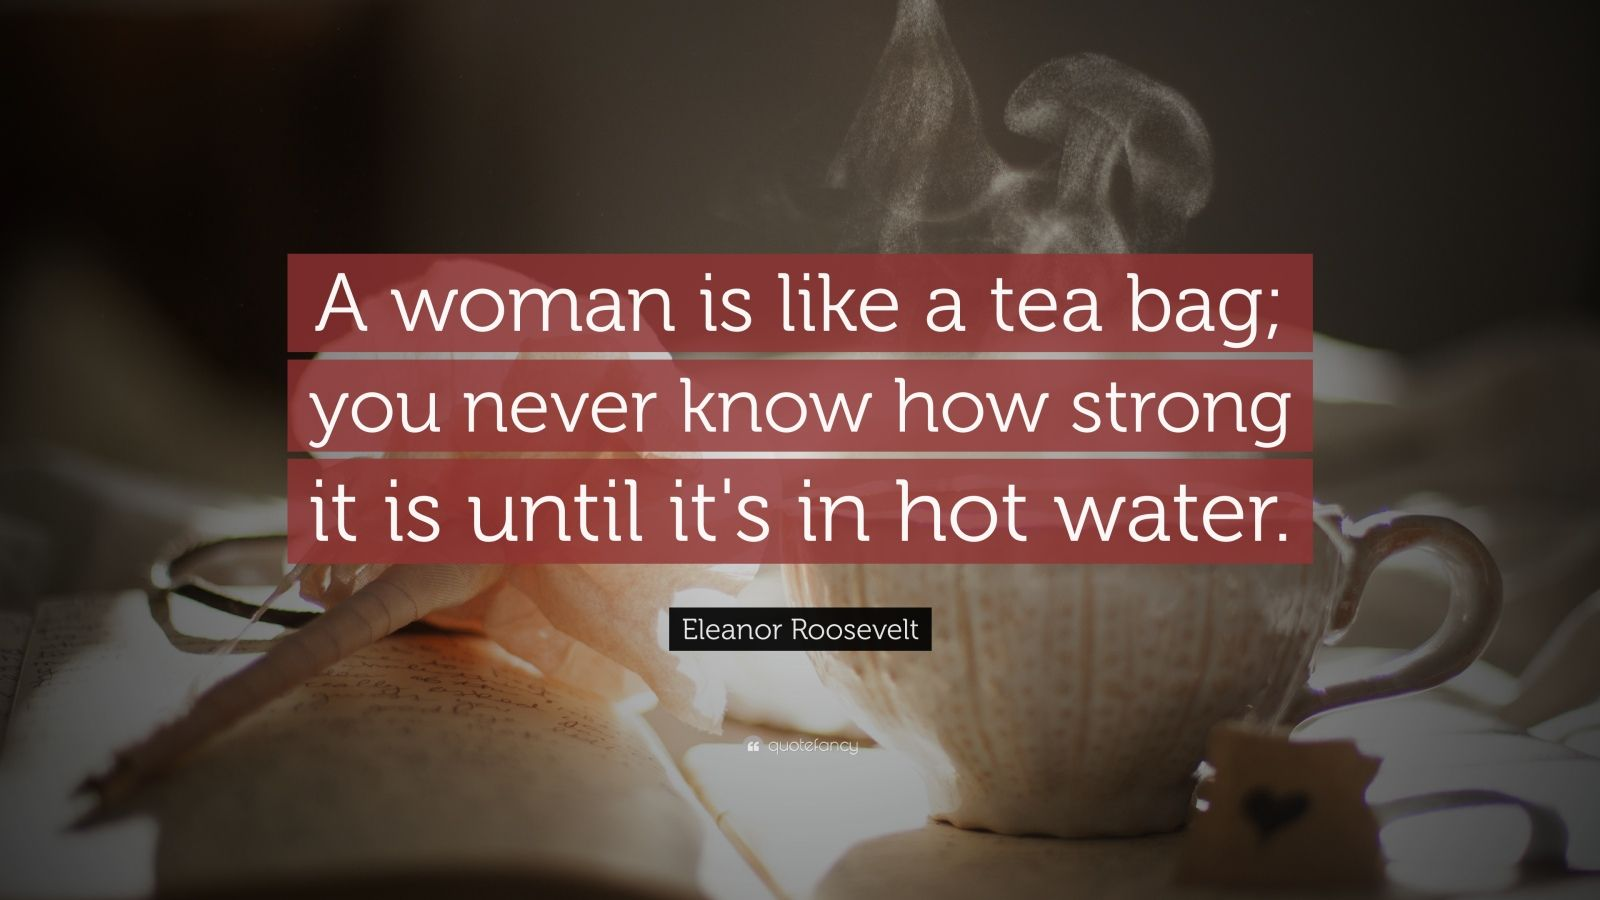 Never Change Attitude Quotes Wallpapers Eleanor Roosevelt Quote A Woman Is Like A Tea Bag You